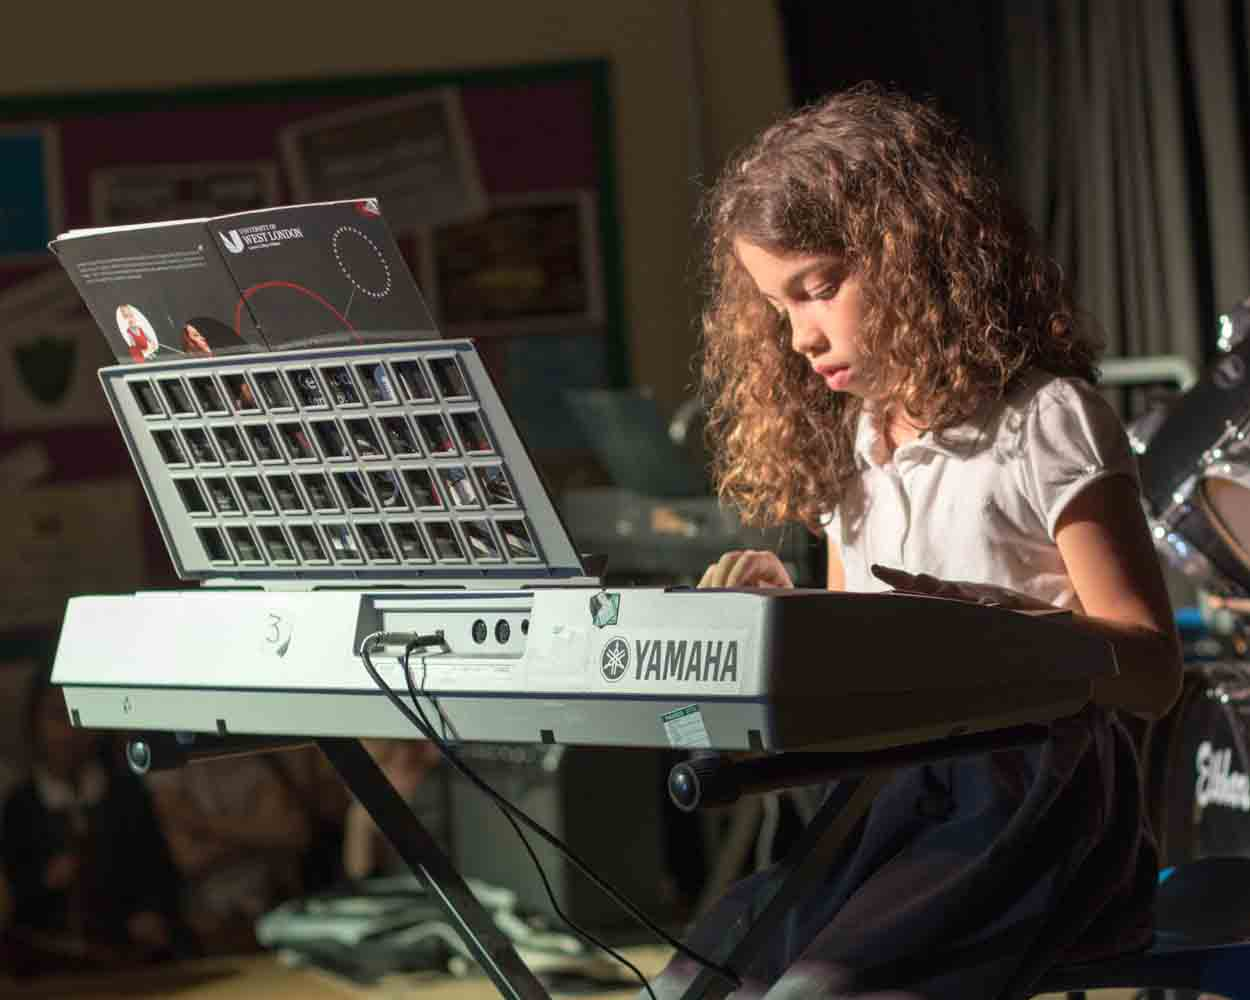 Child playing a keyboard